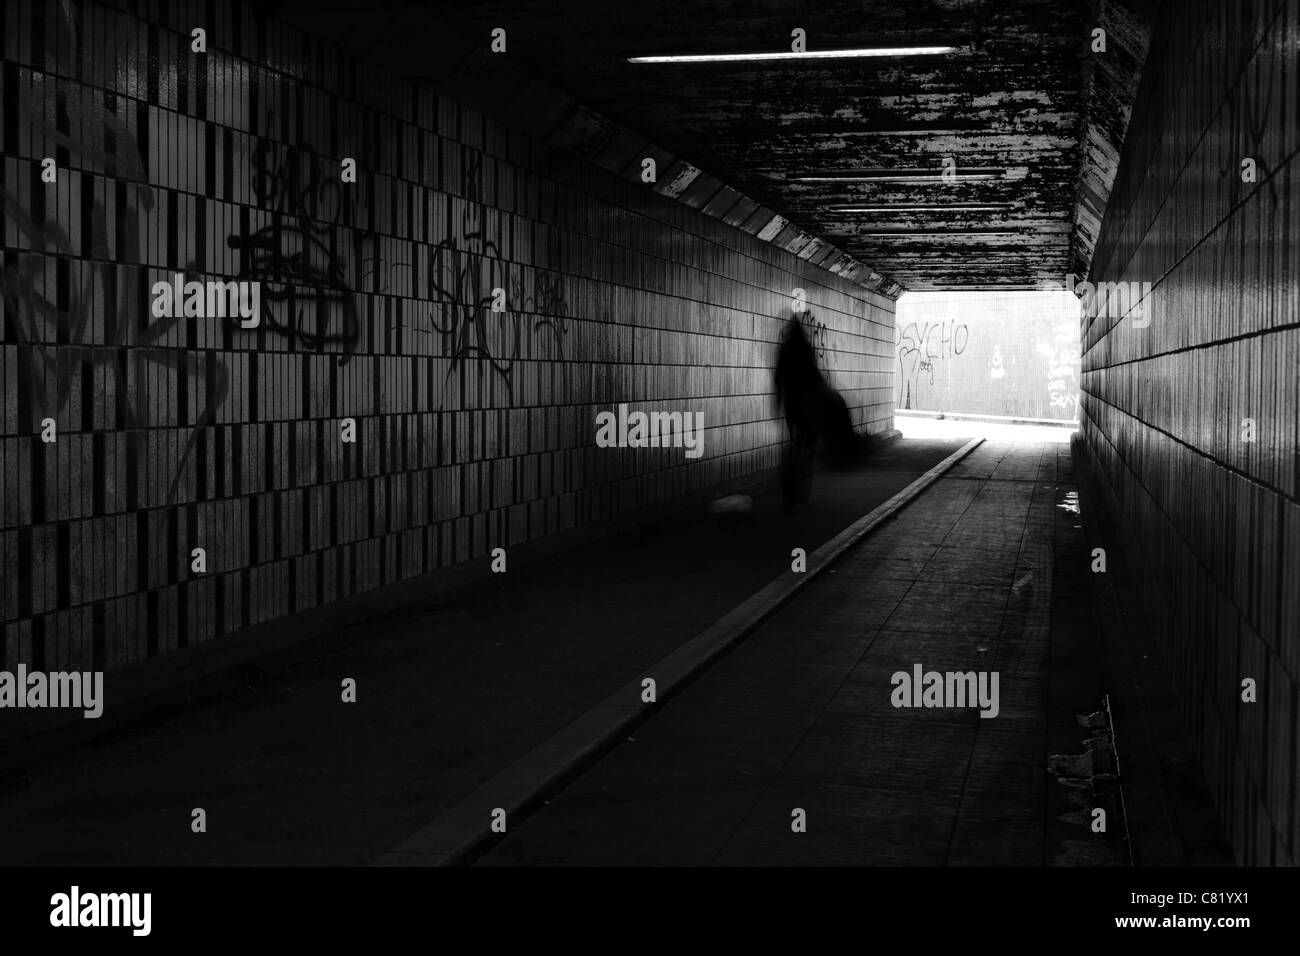 Shadowy figure walking in graffiti covered subway - Stock Image